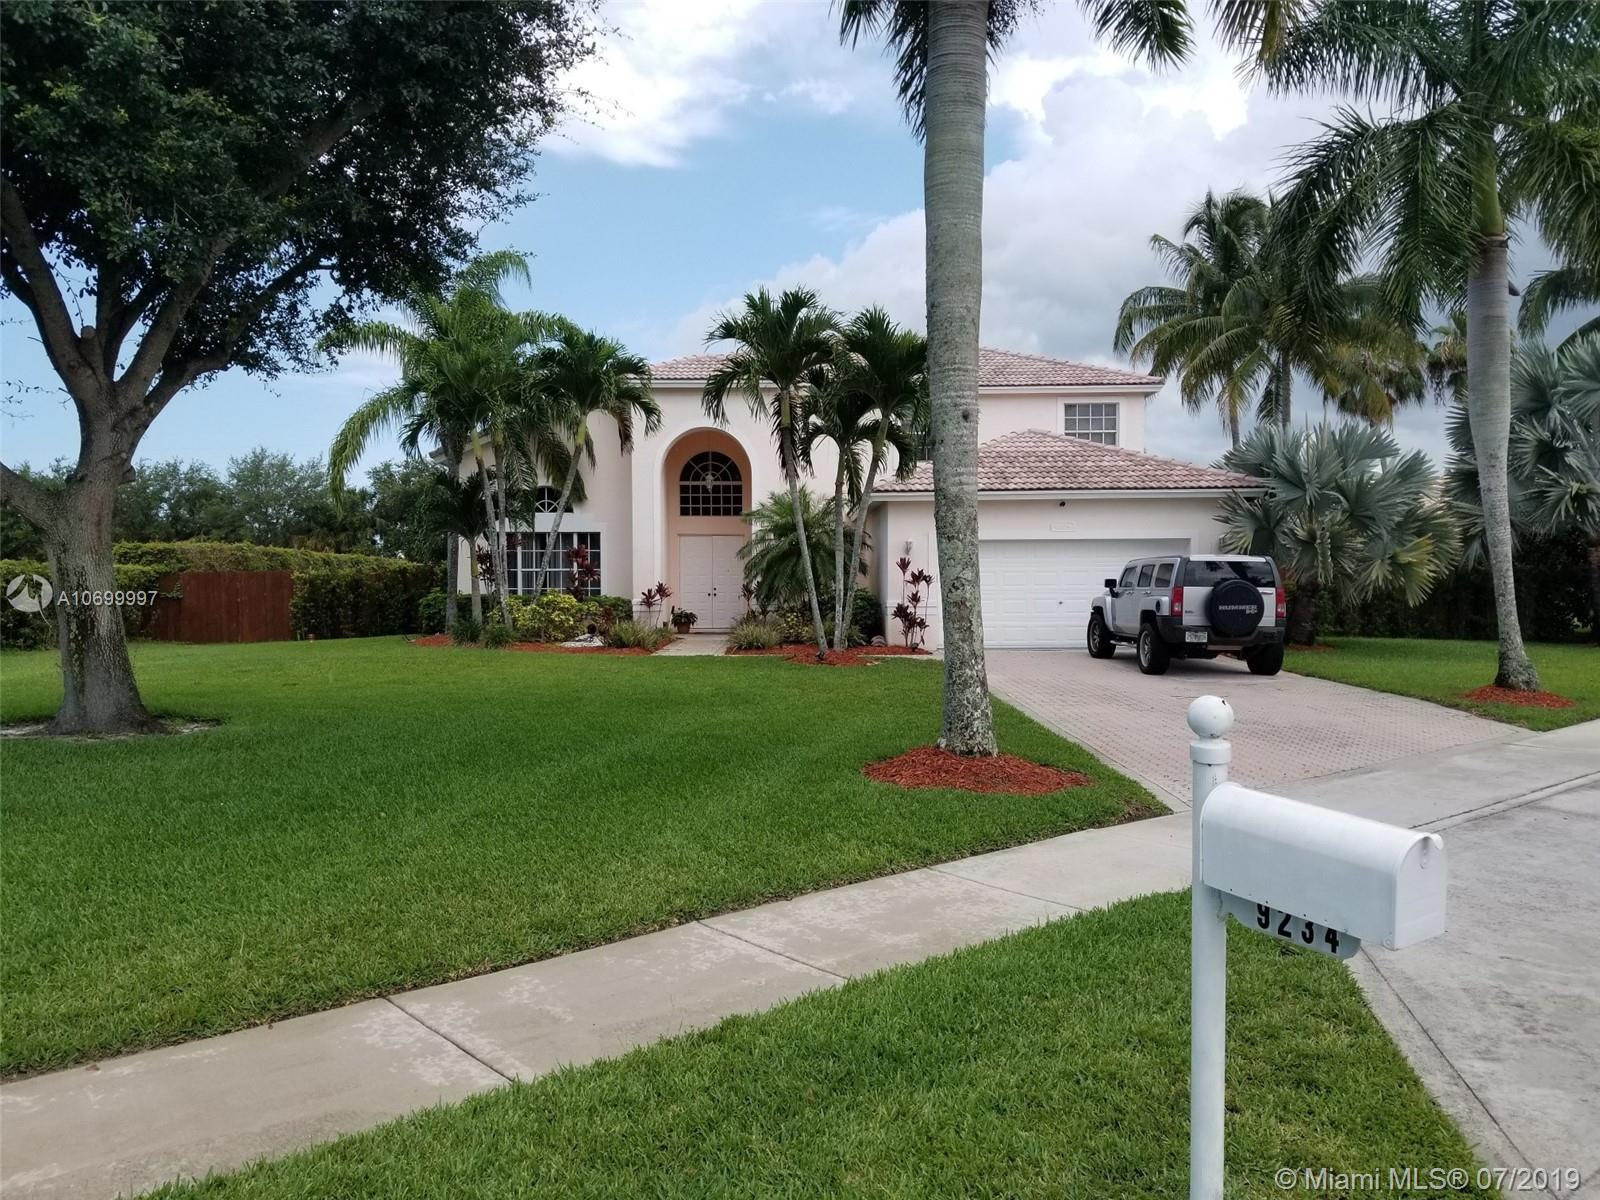 9234 Olmstead Dr, Lake Worth, Florida 33467, 5 Bedrooms Bedrooms, ,3 BathroomsBathrooms,Residential,For Sale,9234 Olmstead Dr,A10699997